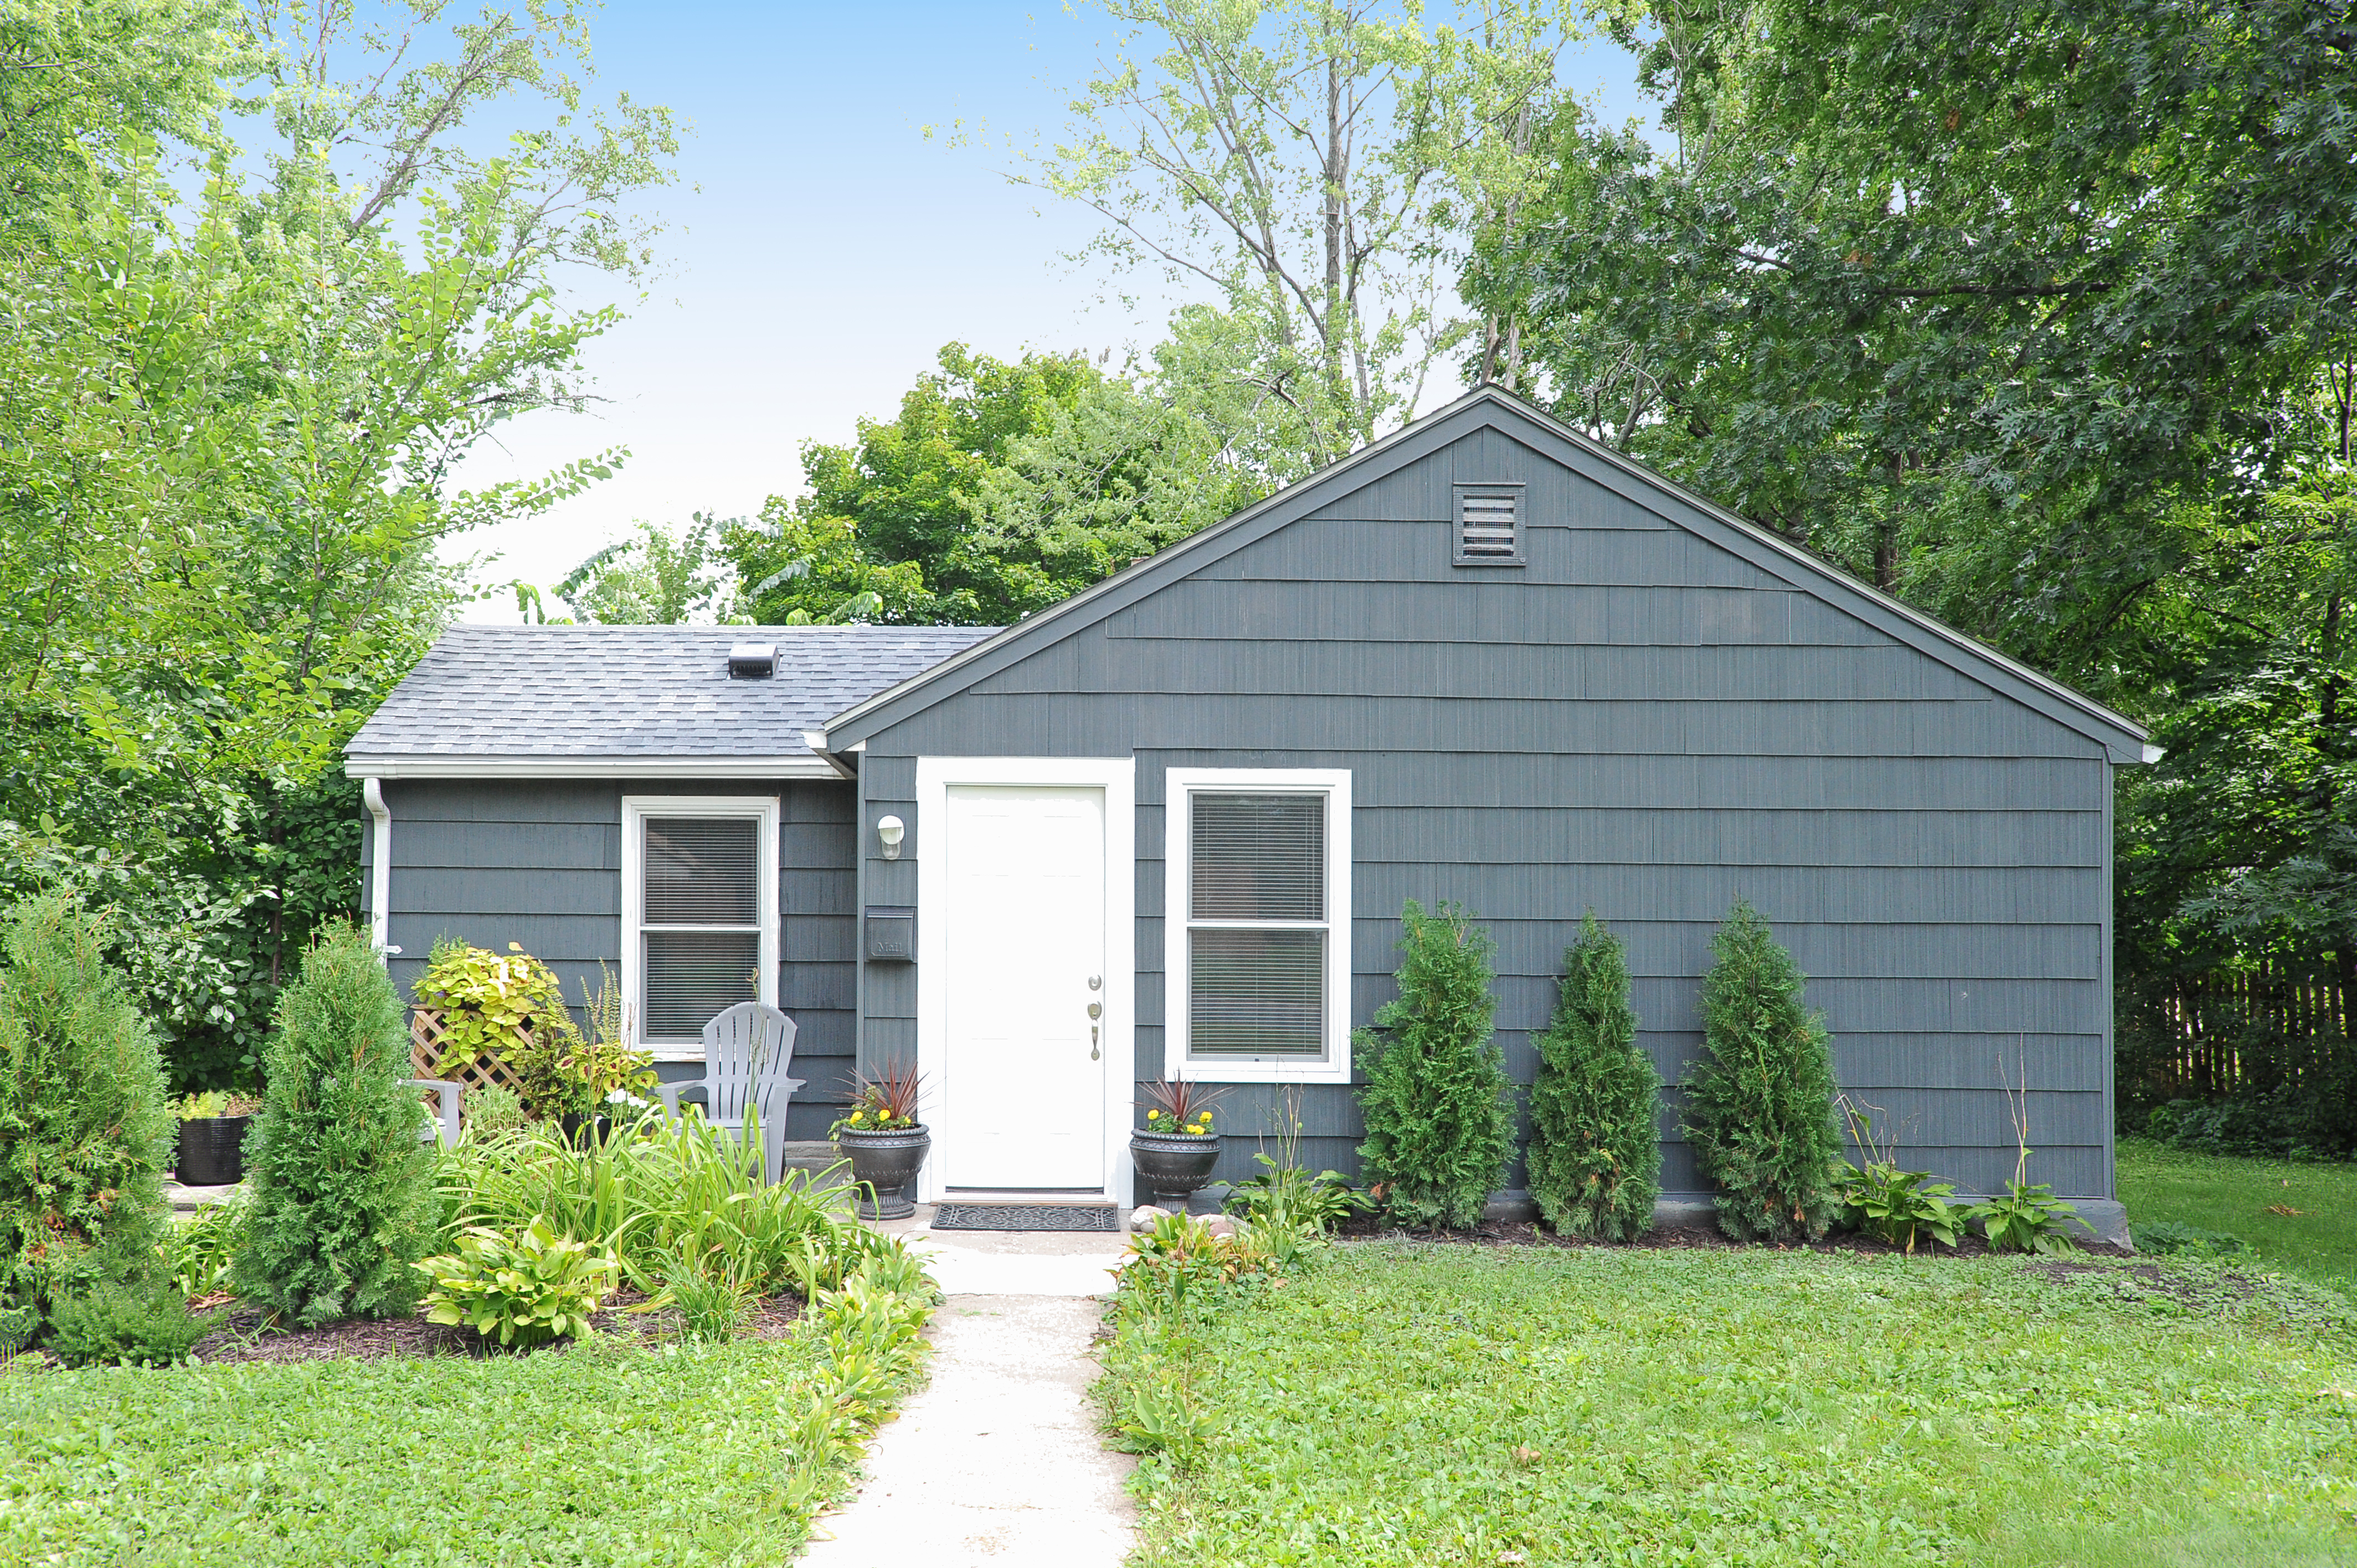 8651 Dupont Ave S: Front